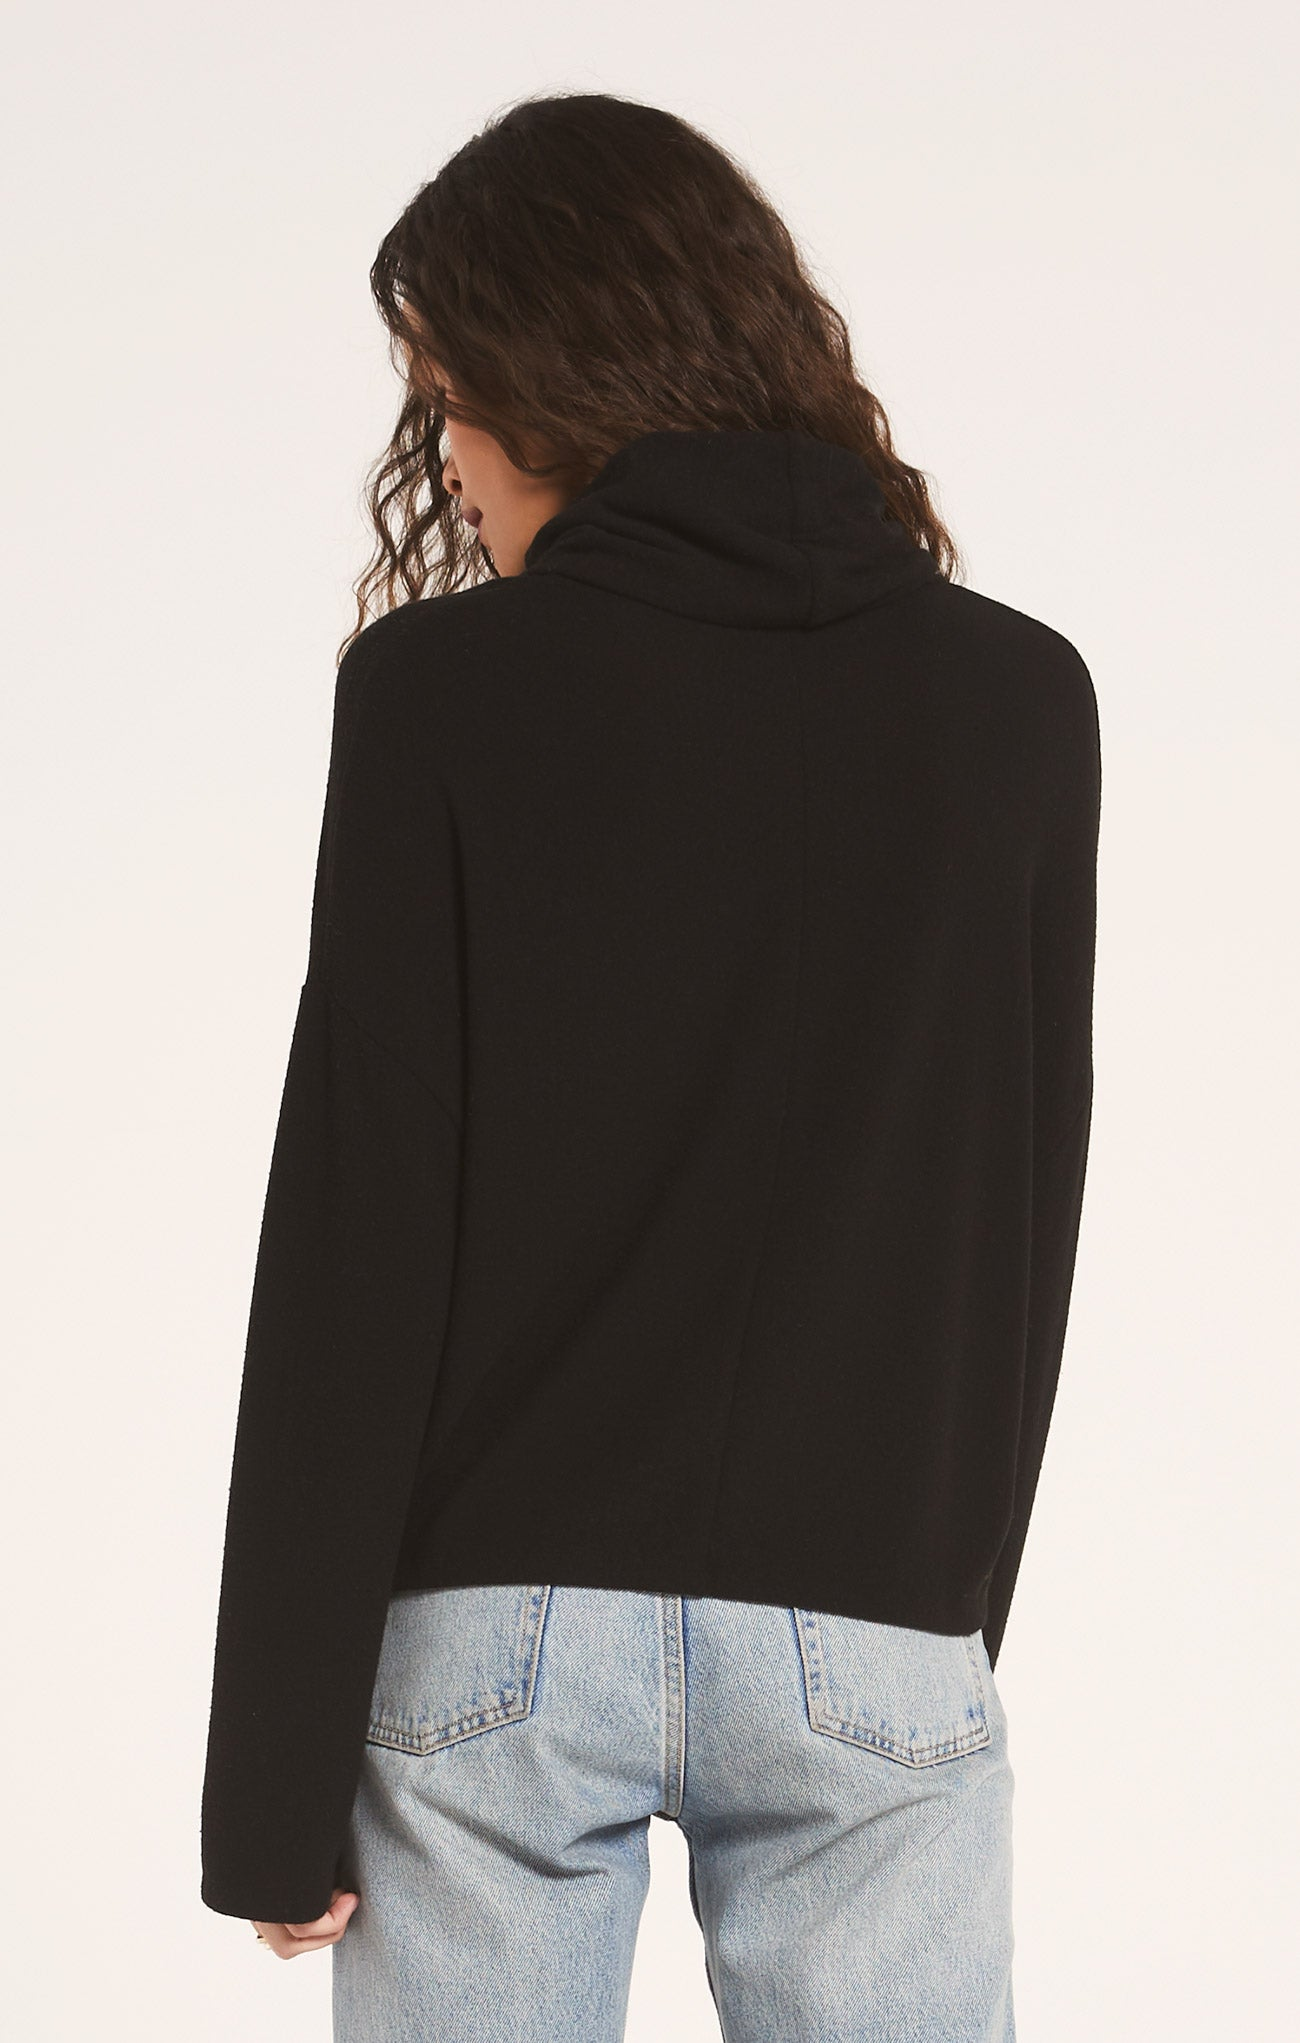 Tops The Soft Spun Skimmer Mock Neck Top Black